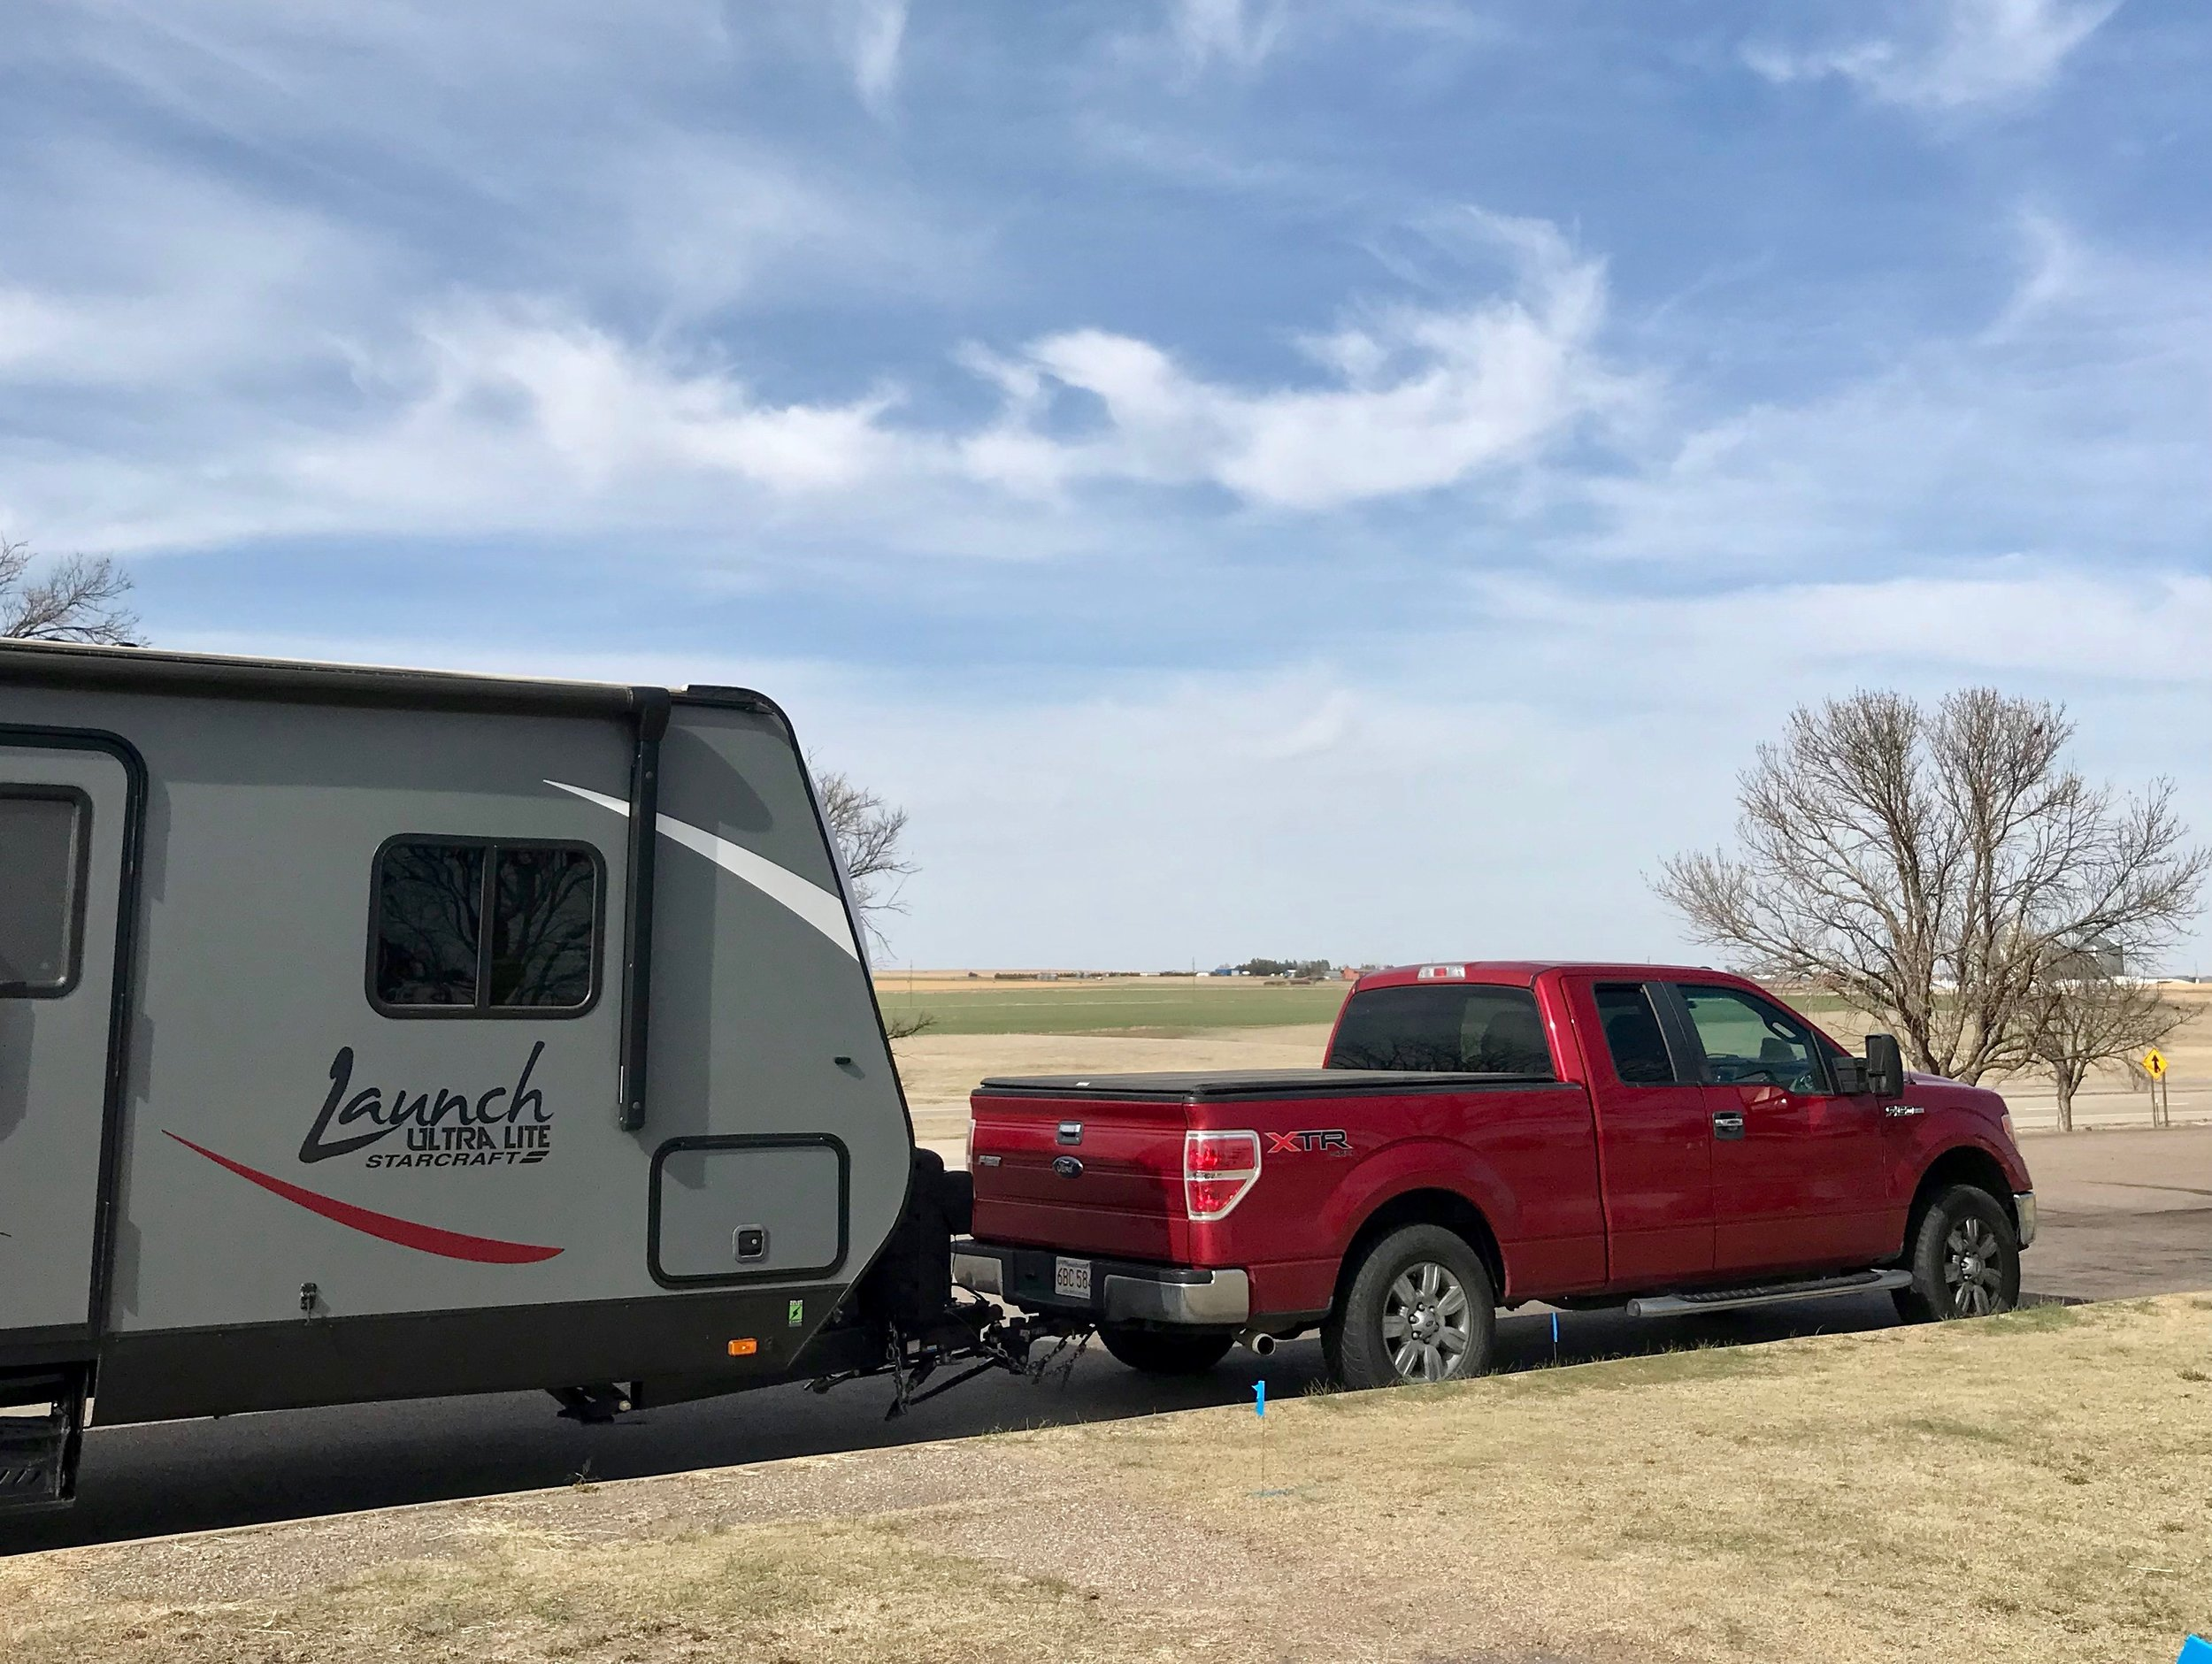 The writer's truck and trailer, on the flatlands of Kansas.